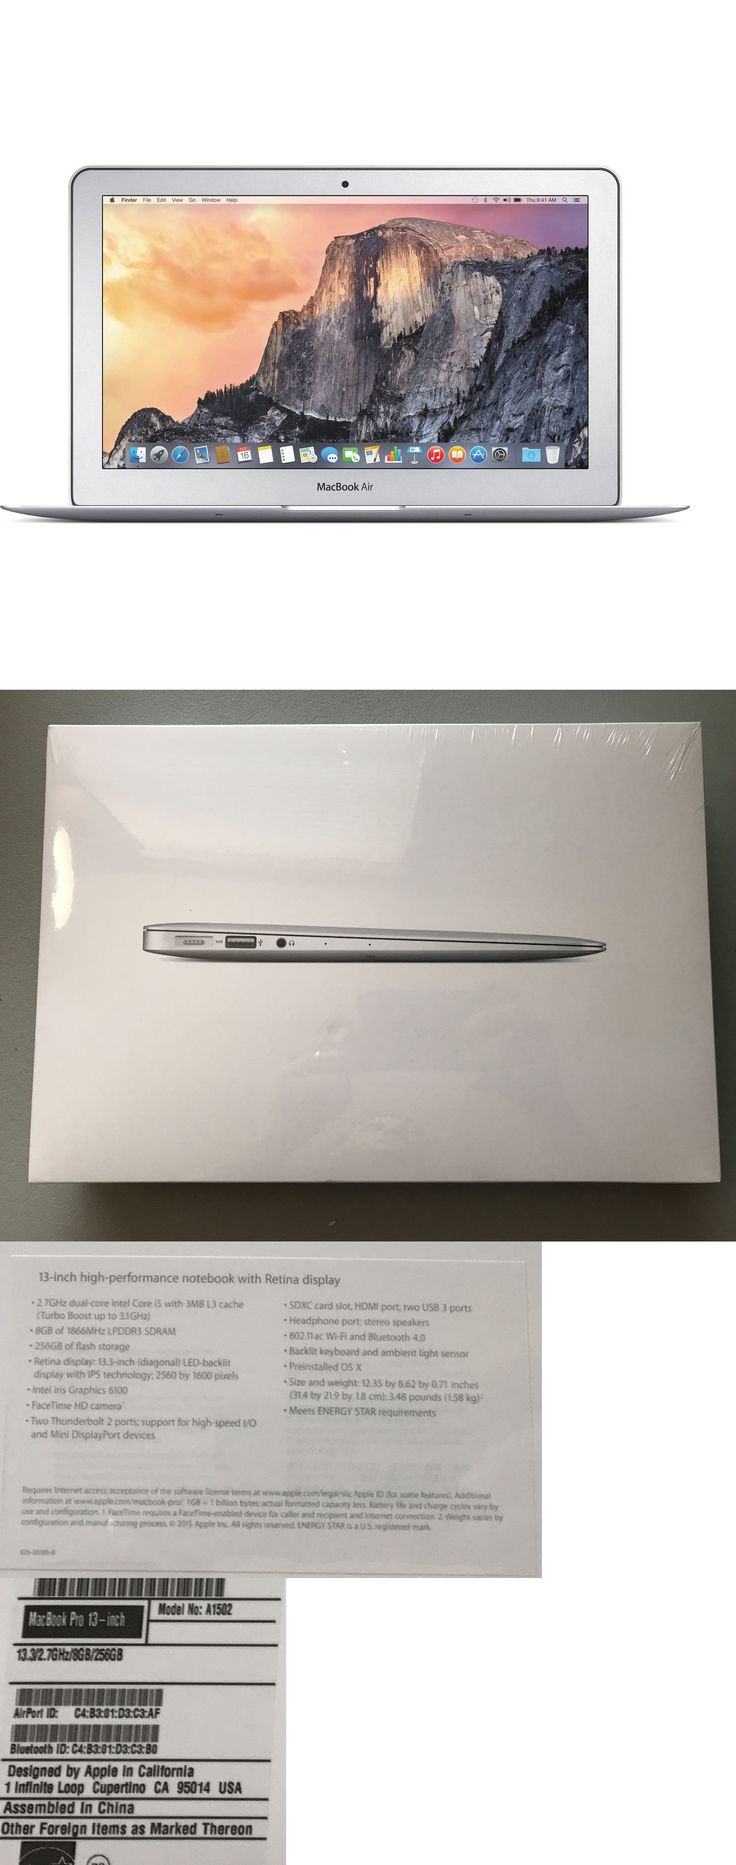 general for sale: New Sealed Apple Macbook Air I7 2.2Ghz 8Gb 512Gb 11.6 Laptop Mjvr2ll/A 11 -> BUY IT NOW ONLY: $1299 on eBay!